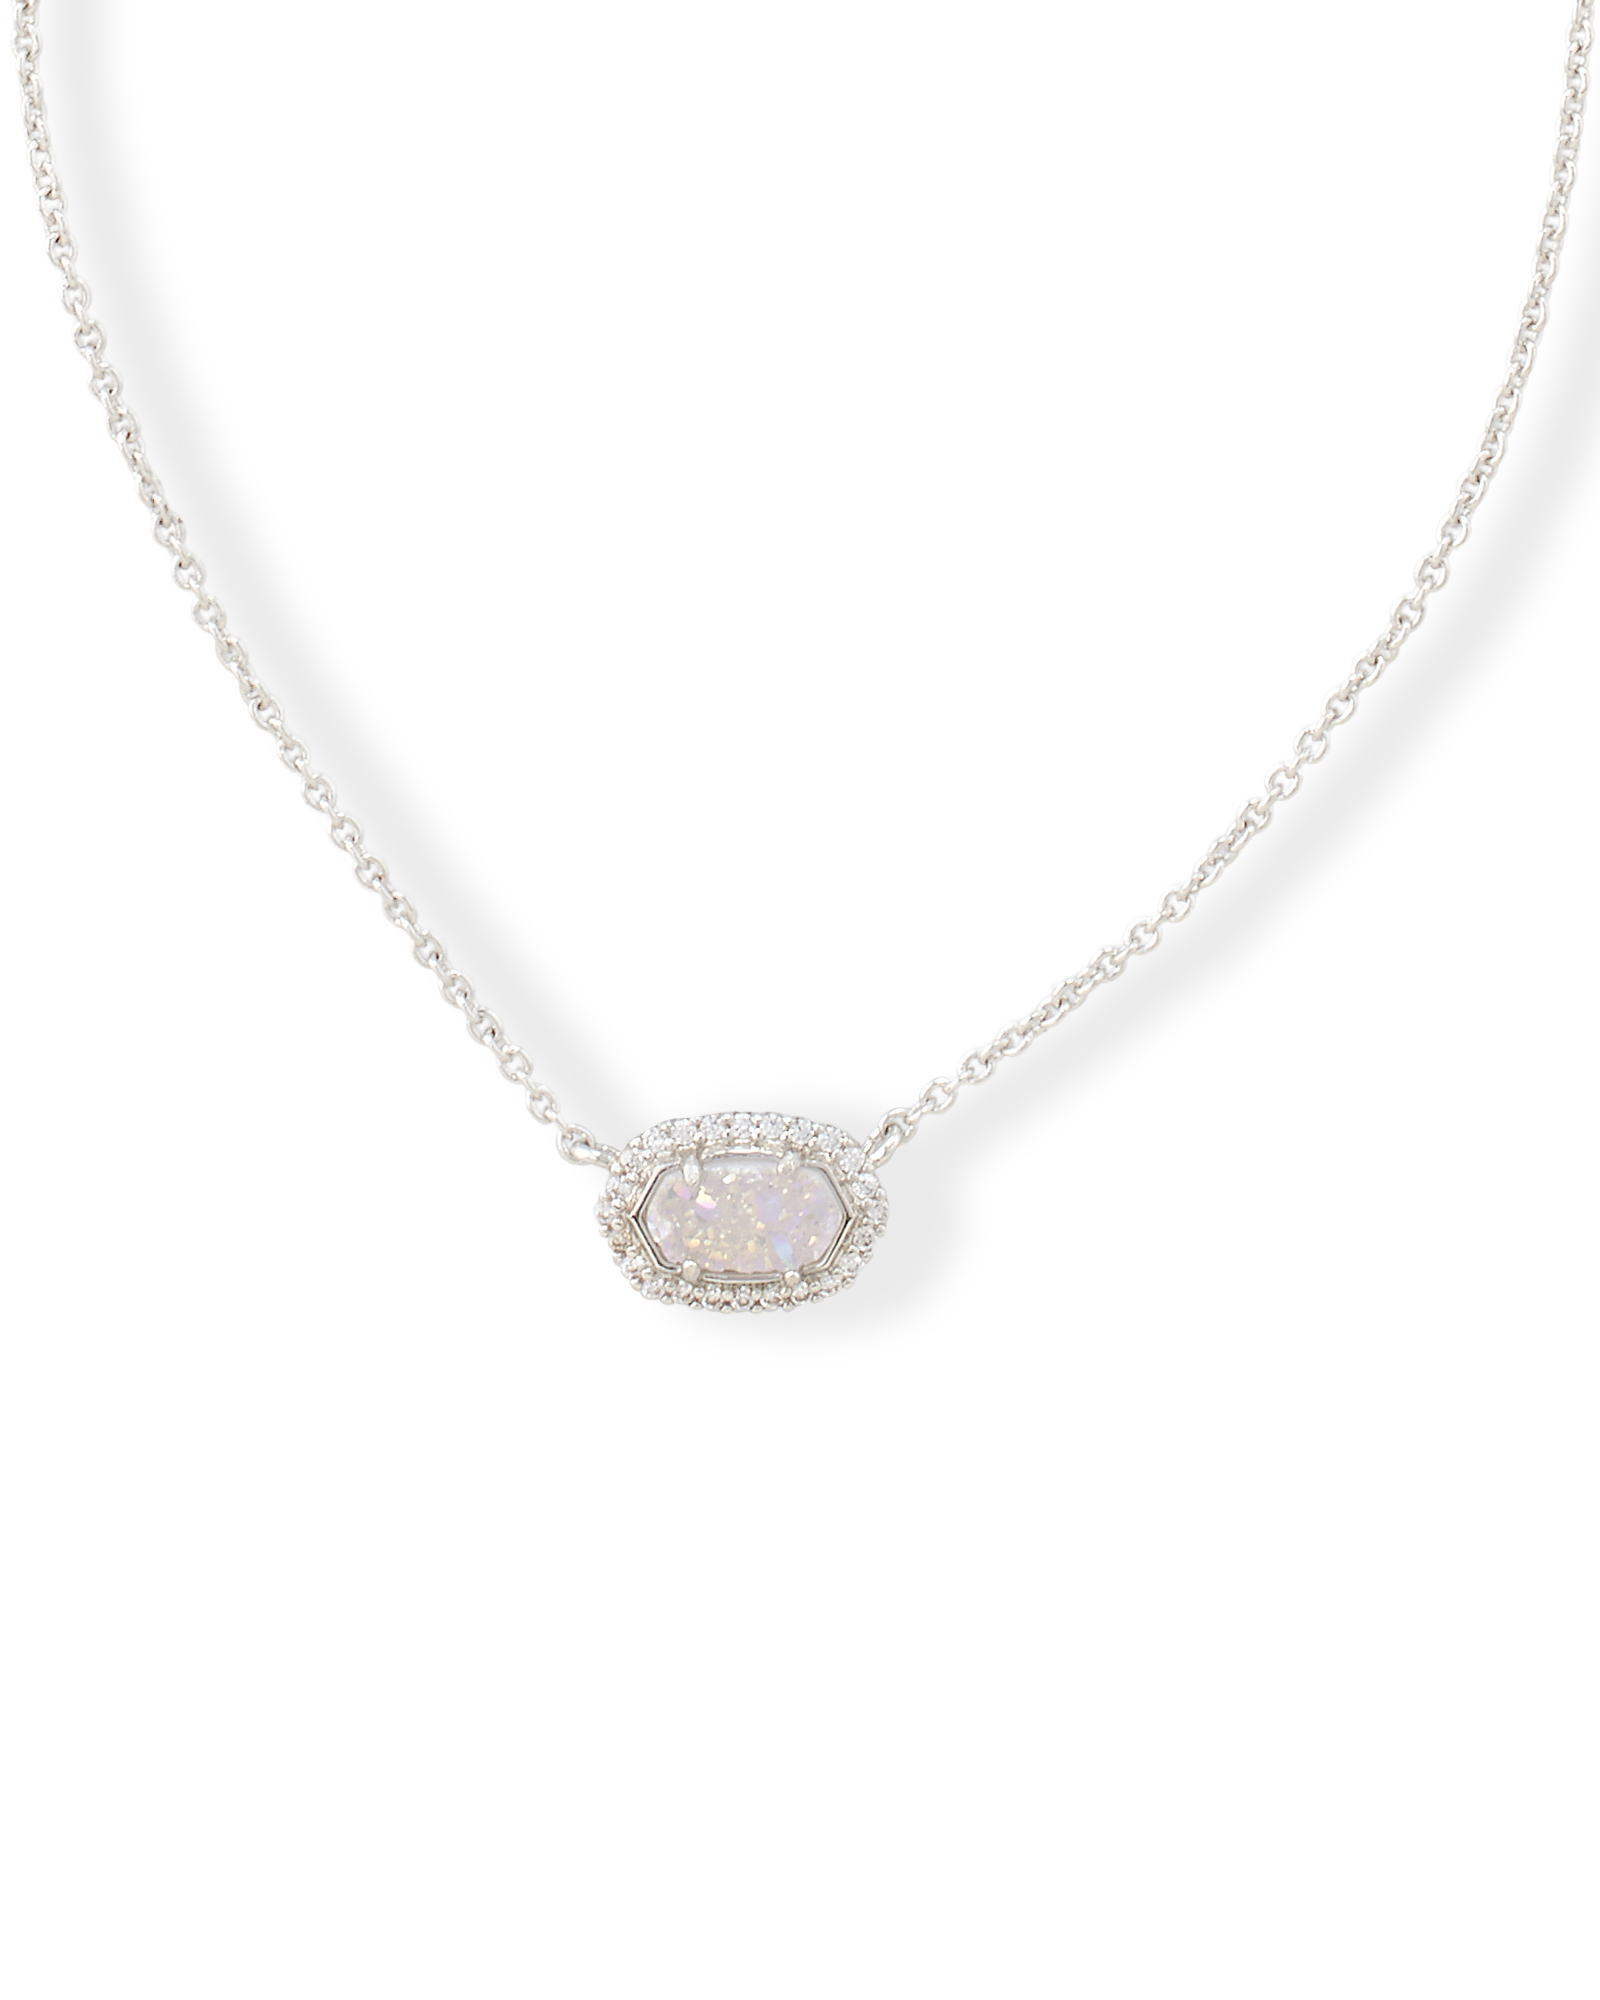 Chelsea Pendant Necklace In Silver – Kendra Scott Weddings For Best And Newest Oval Sparkle Halo Pendant Necklaces (View 4 of 25)